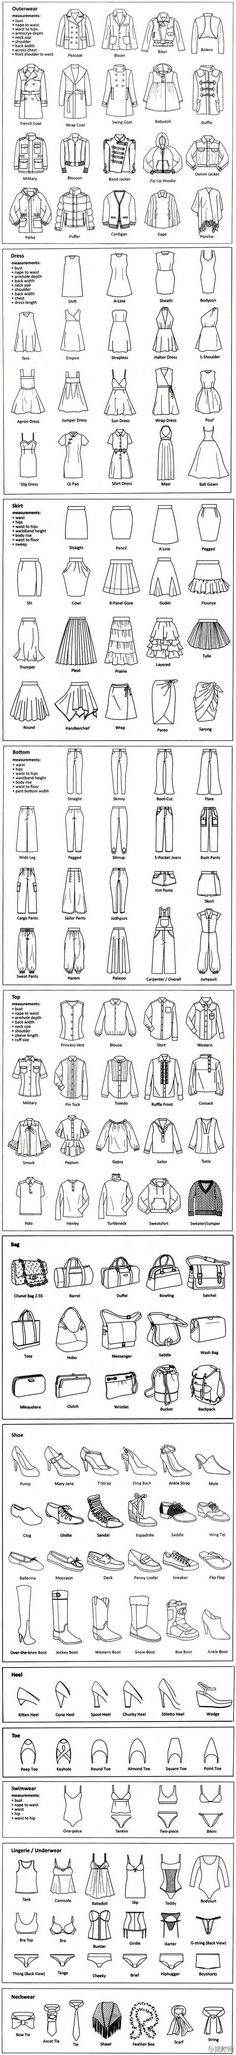 Garment fashion terminology//